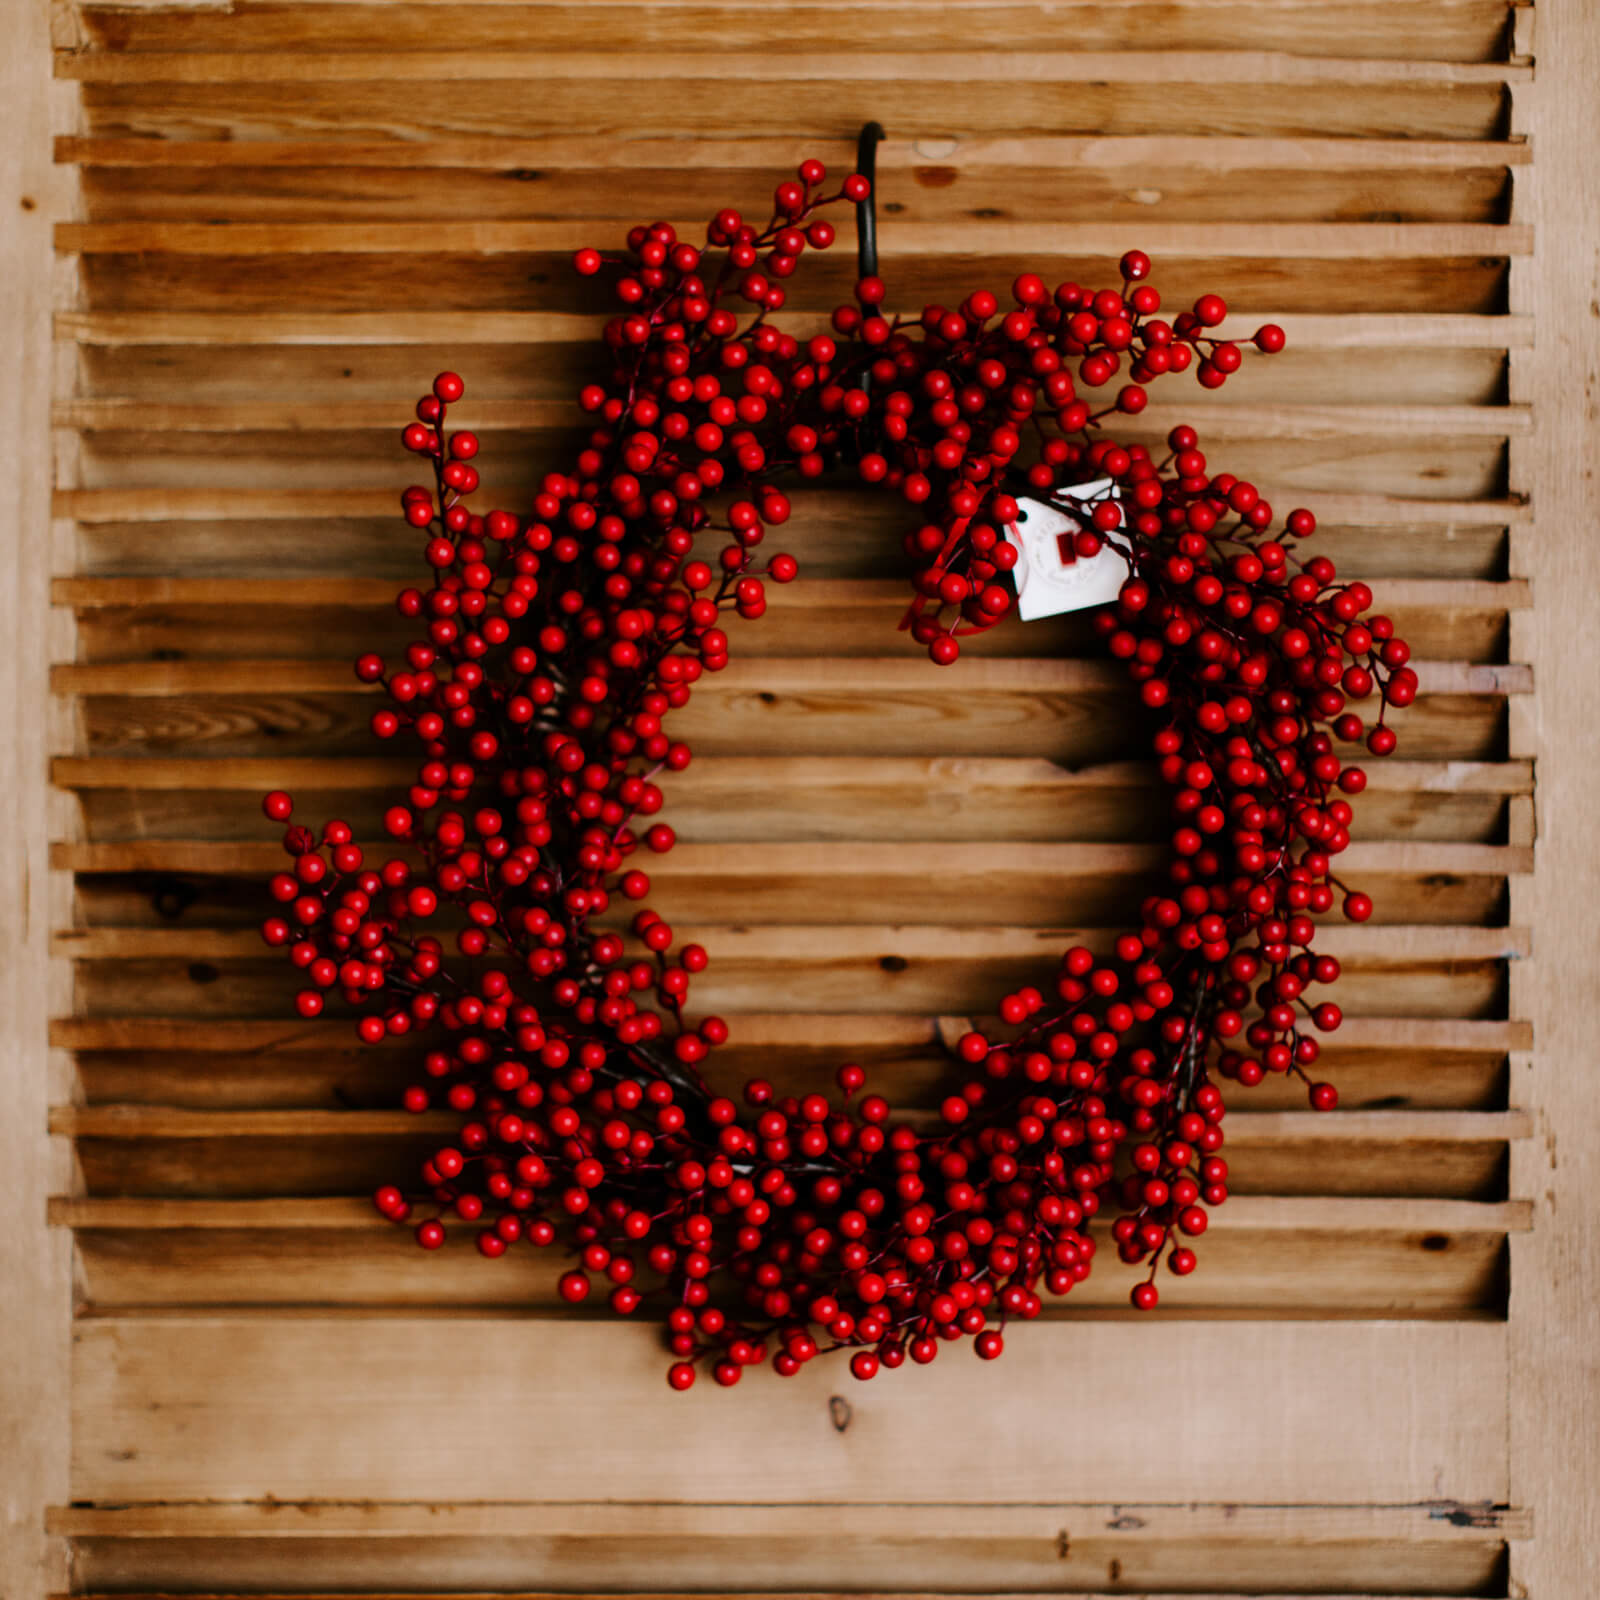 An 18 inch matte, bright red faux berry wreath hung on a wooden door for holiday decorating.